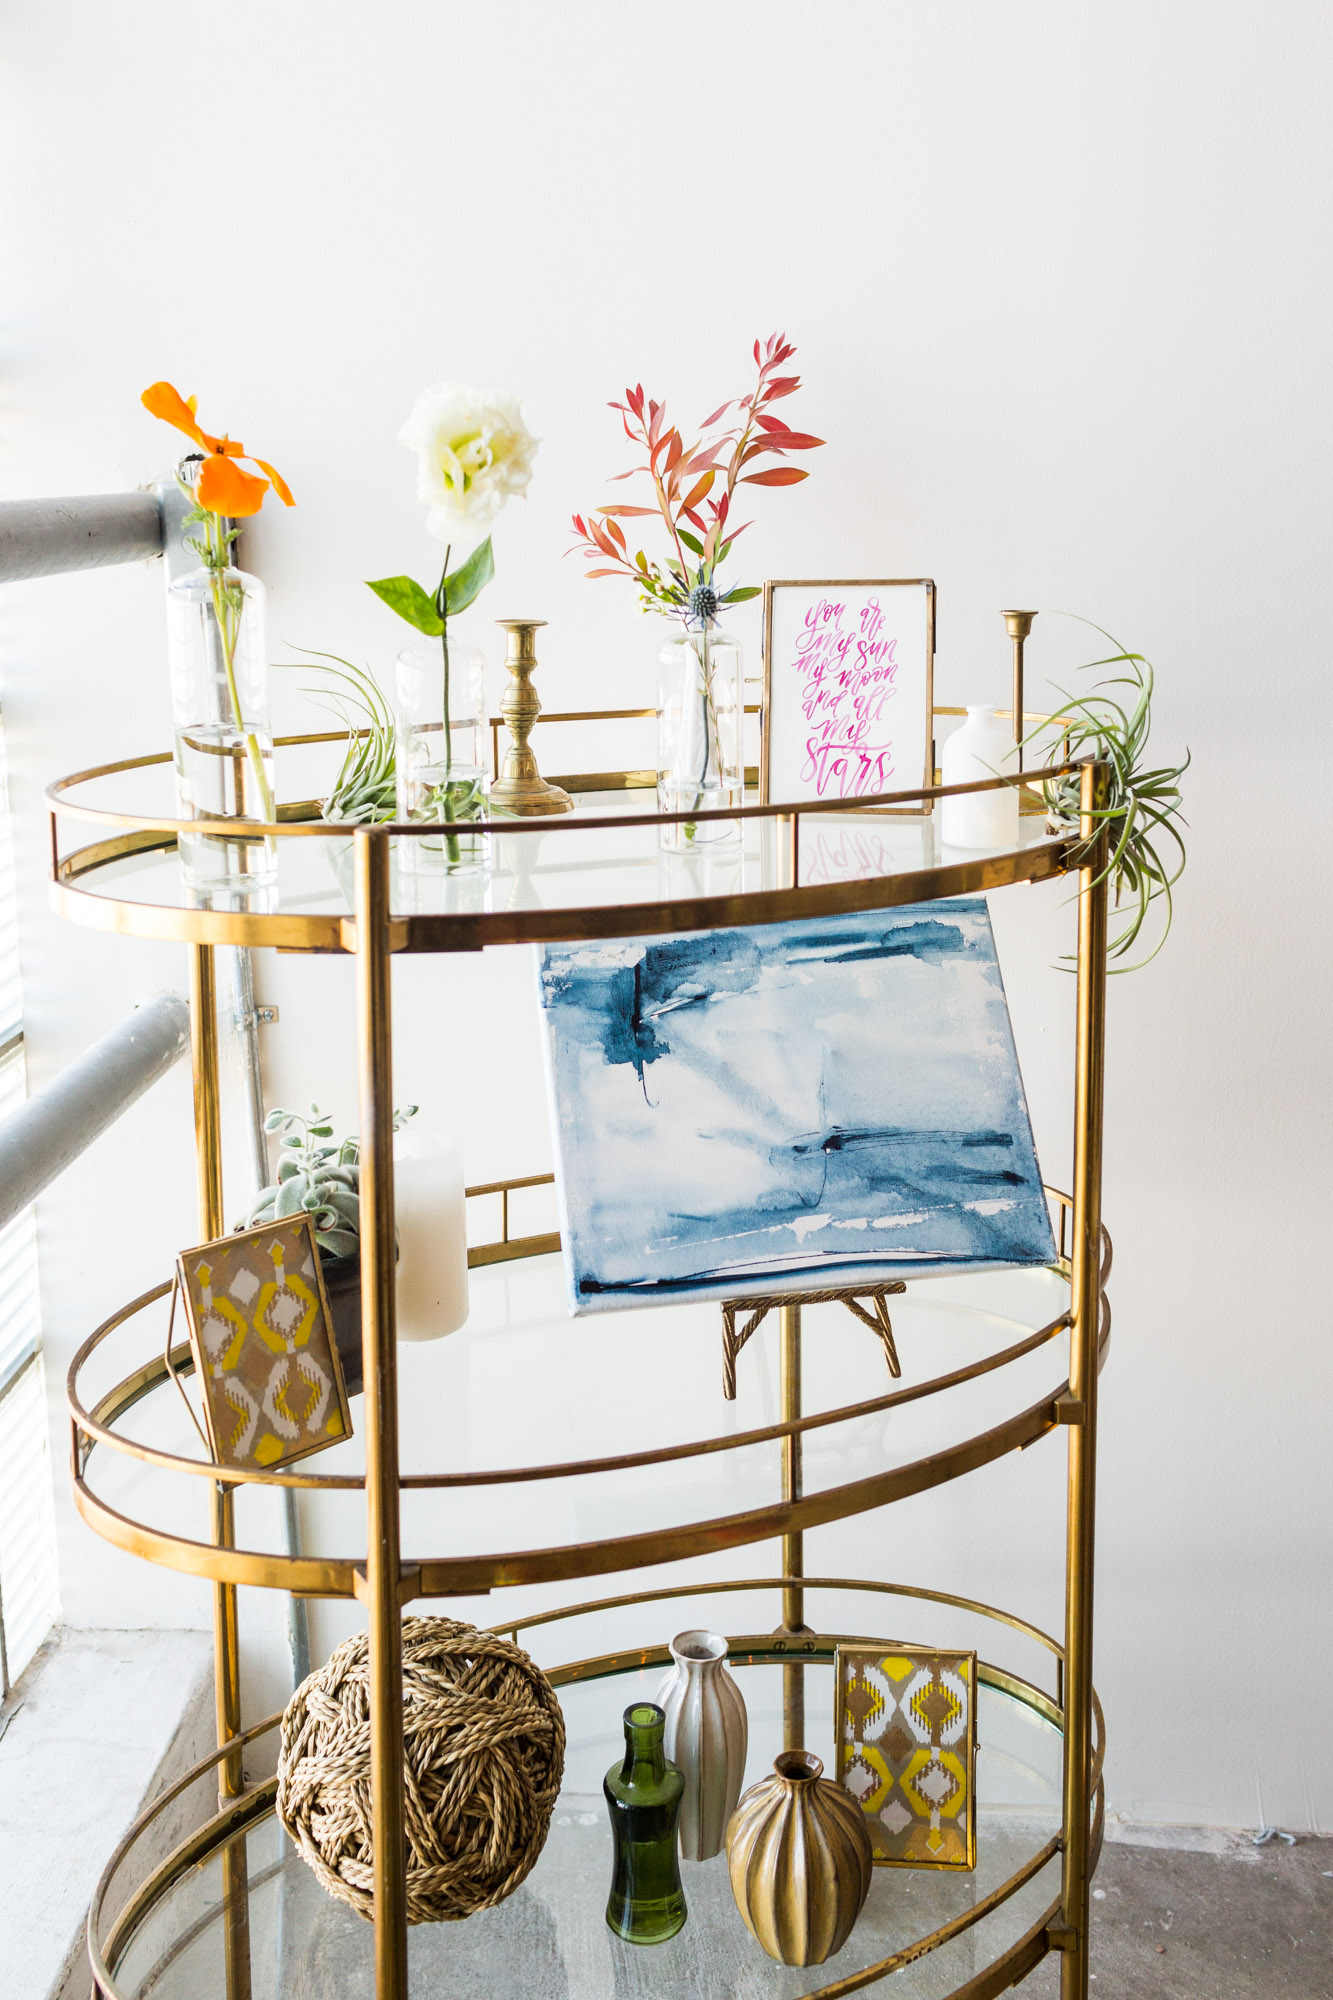 Samantha Louise Designs | Abstract Fine Art For Weddings | Cavin Elizabeth Photography